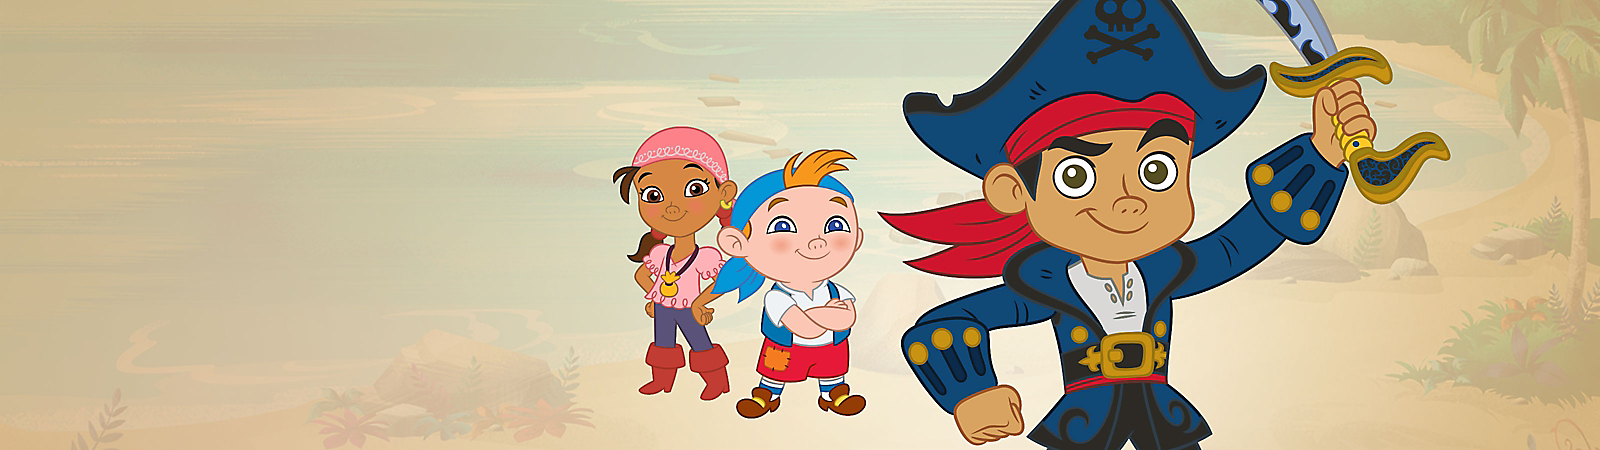 Background image of Captain Jake and the Never Land Pirates